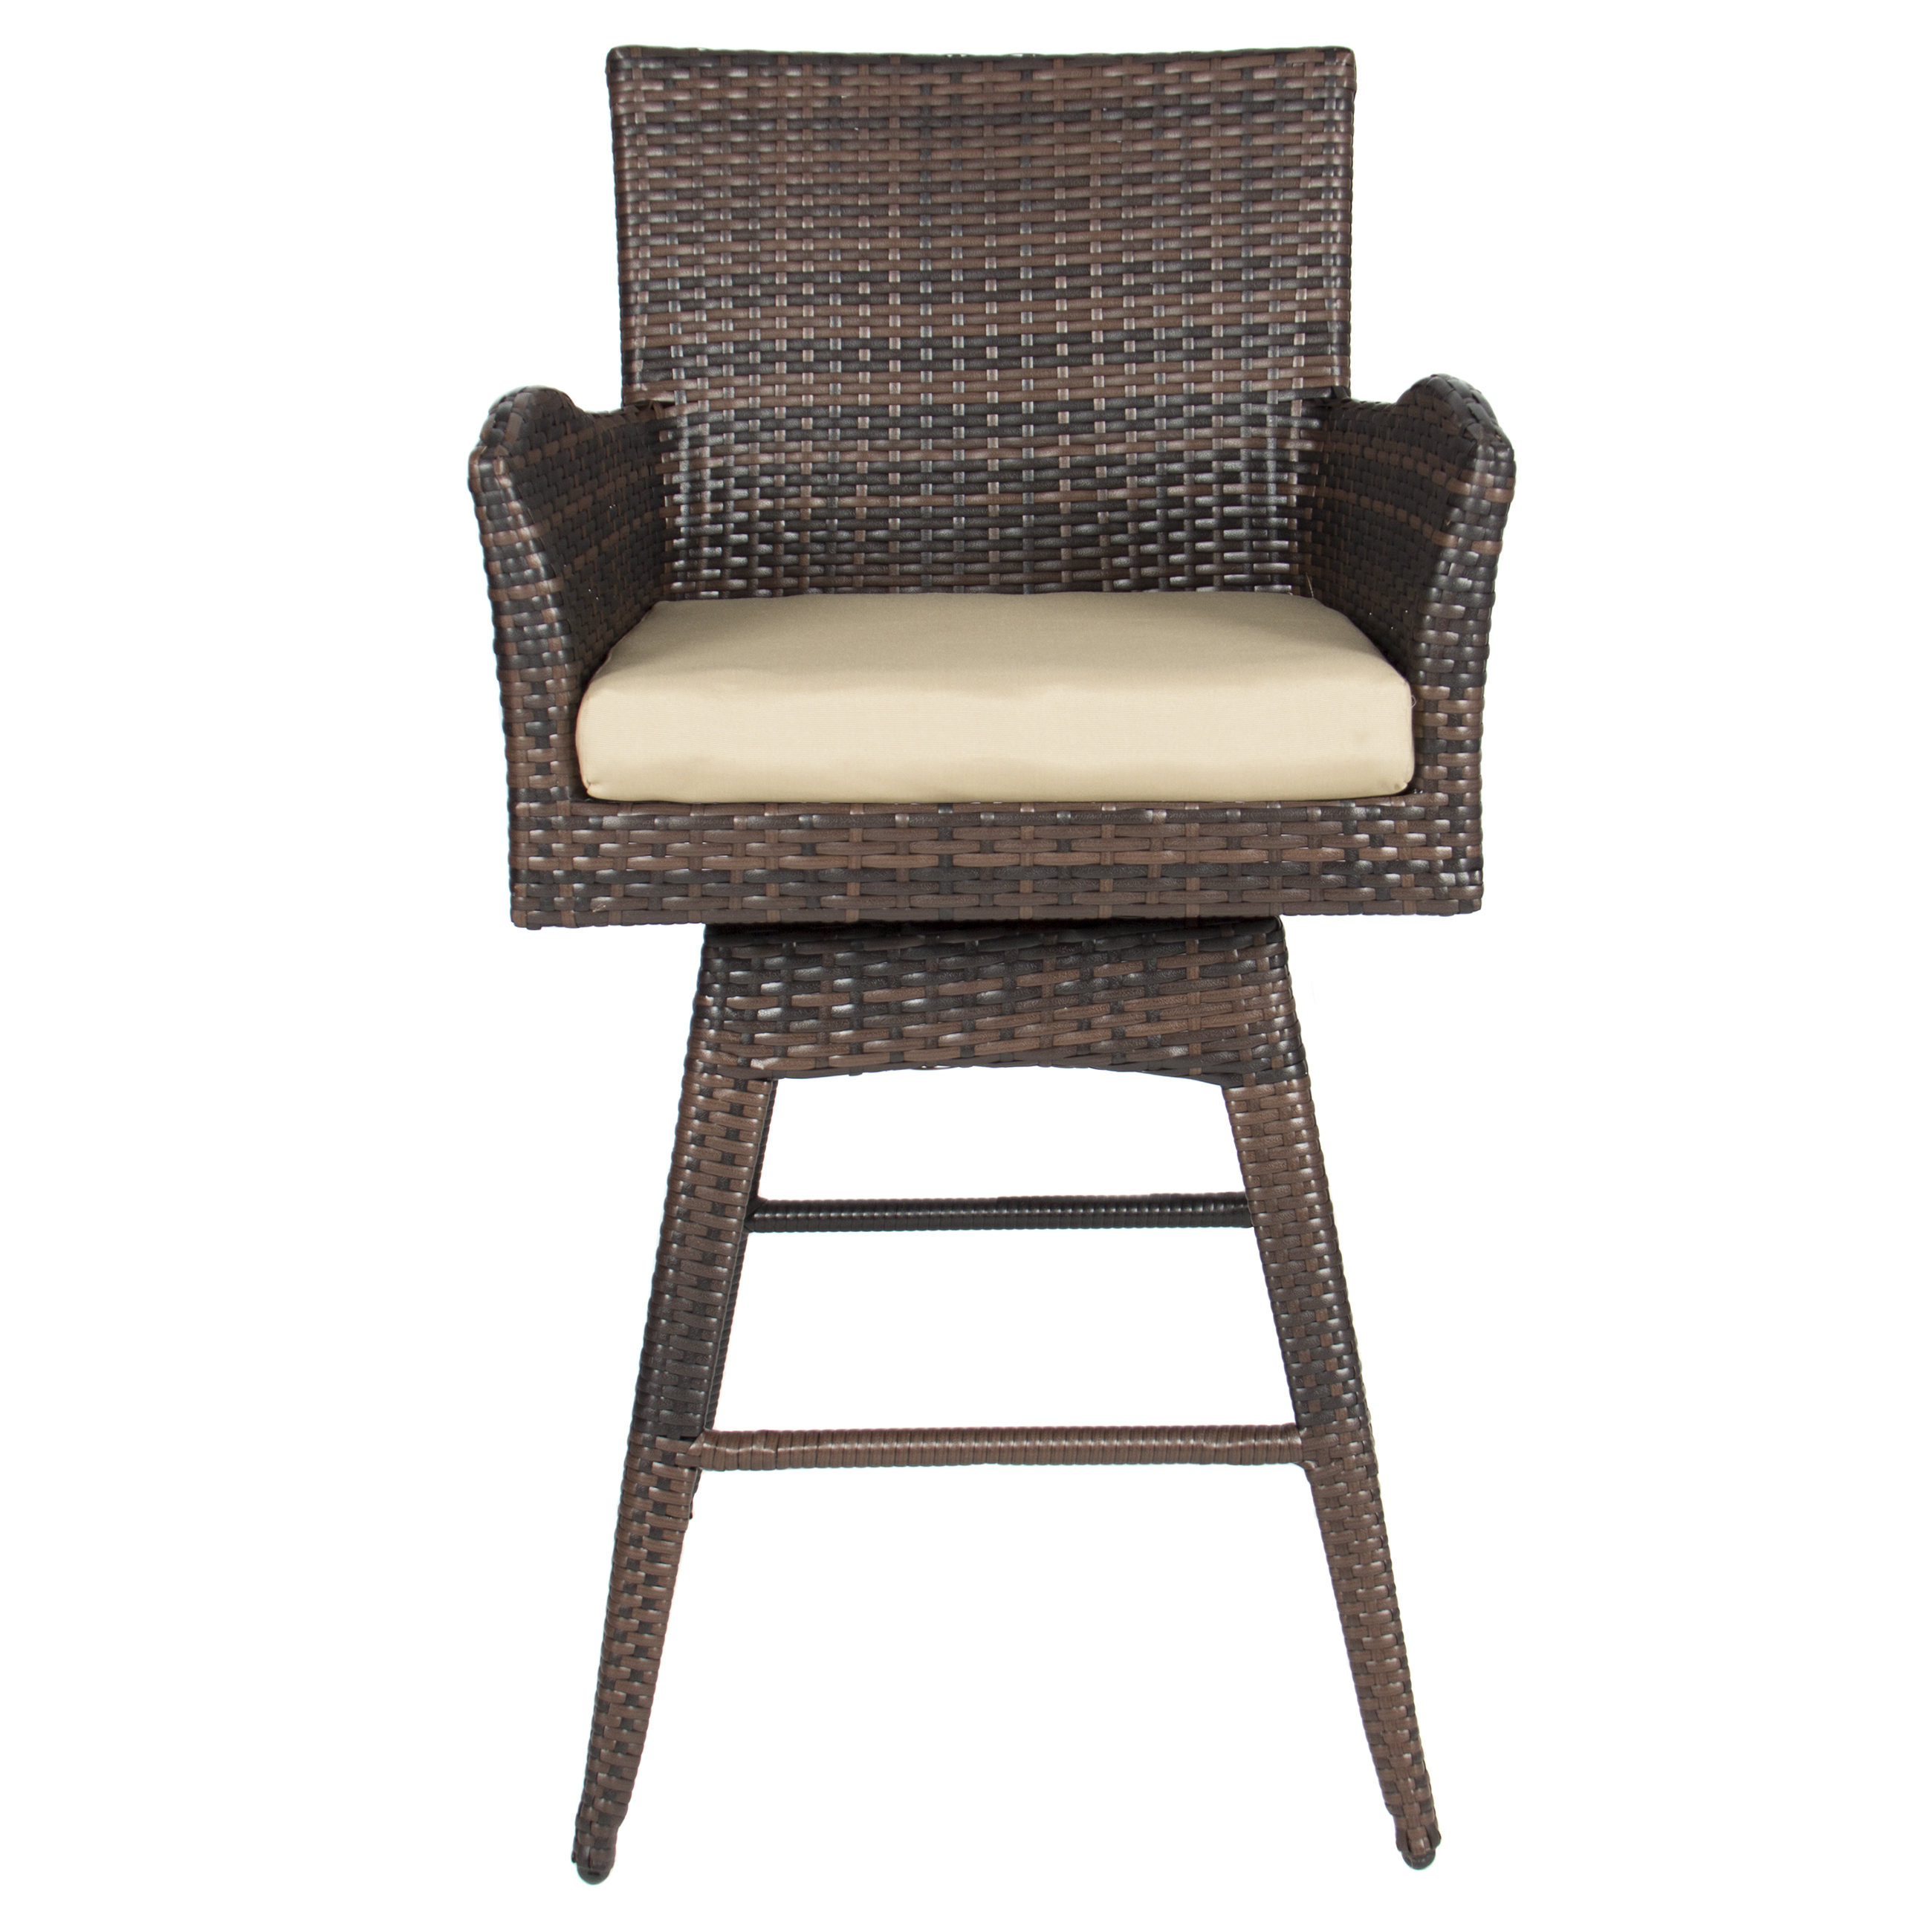 reputable site 352ec 1b1dd Best Choice Products Outdoor Brown Wicker Swivel Bar Stool w/ Cushion